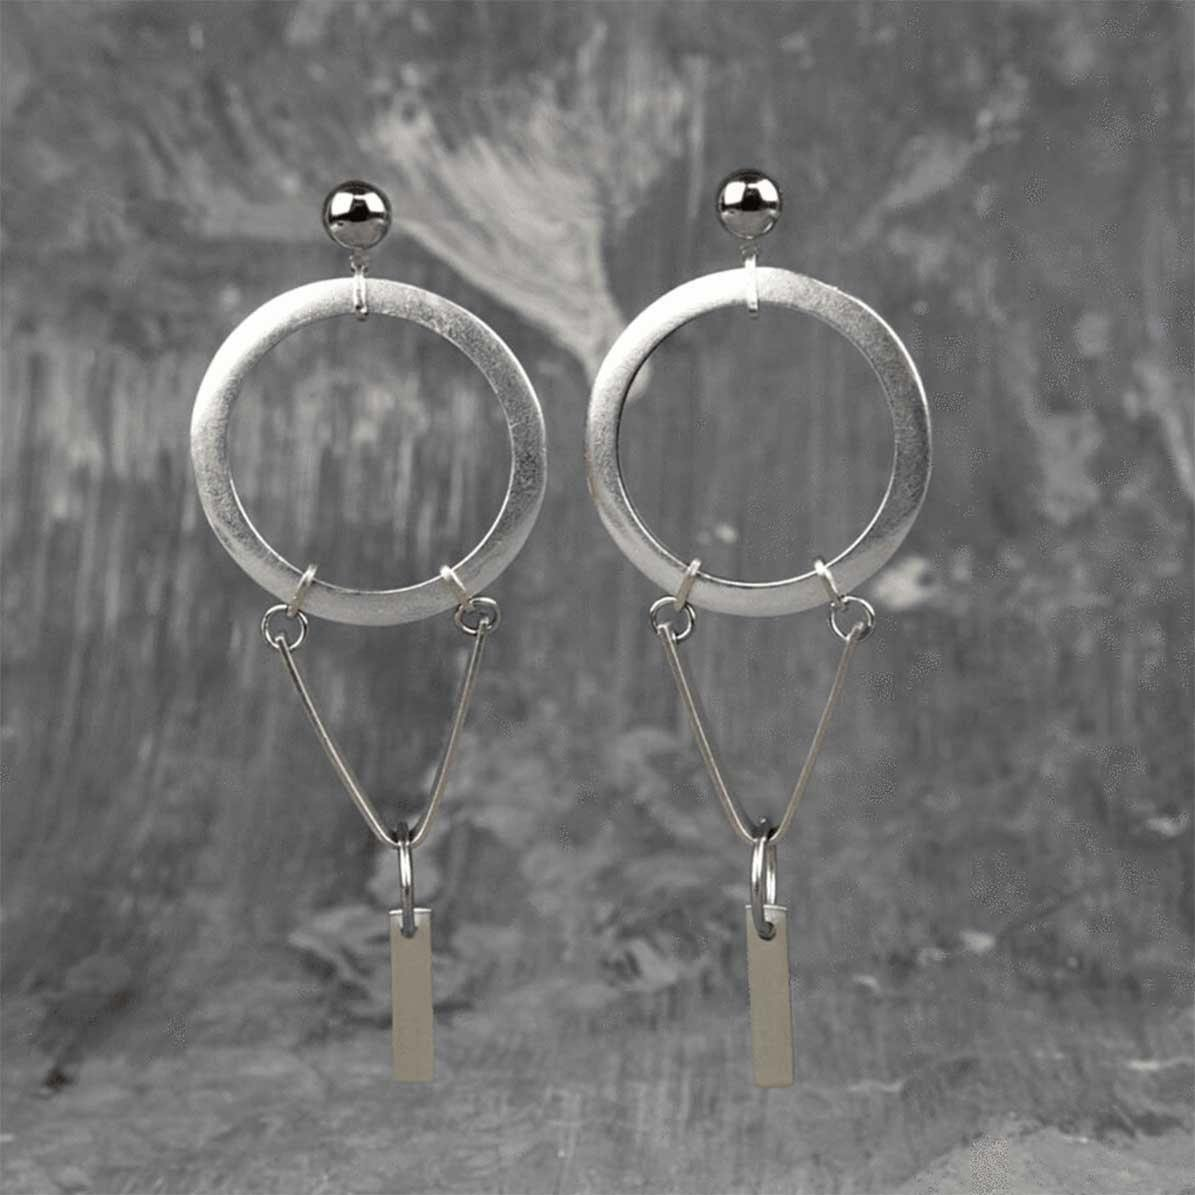 Steel & Silver Hoops Ovi Earrings